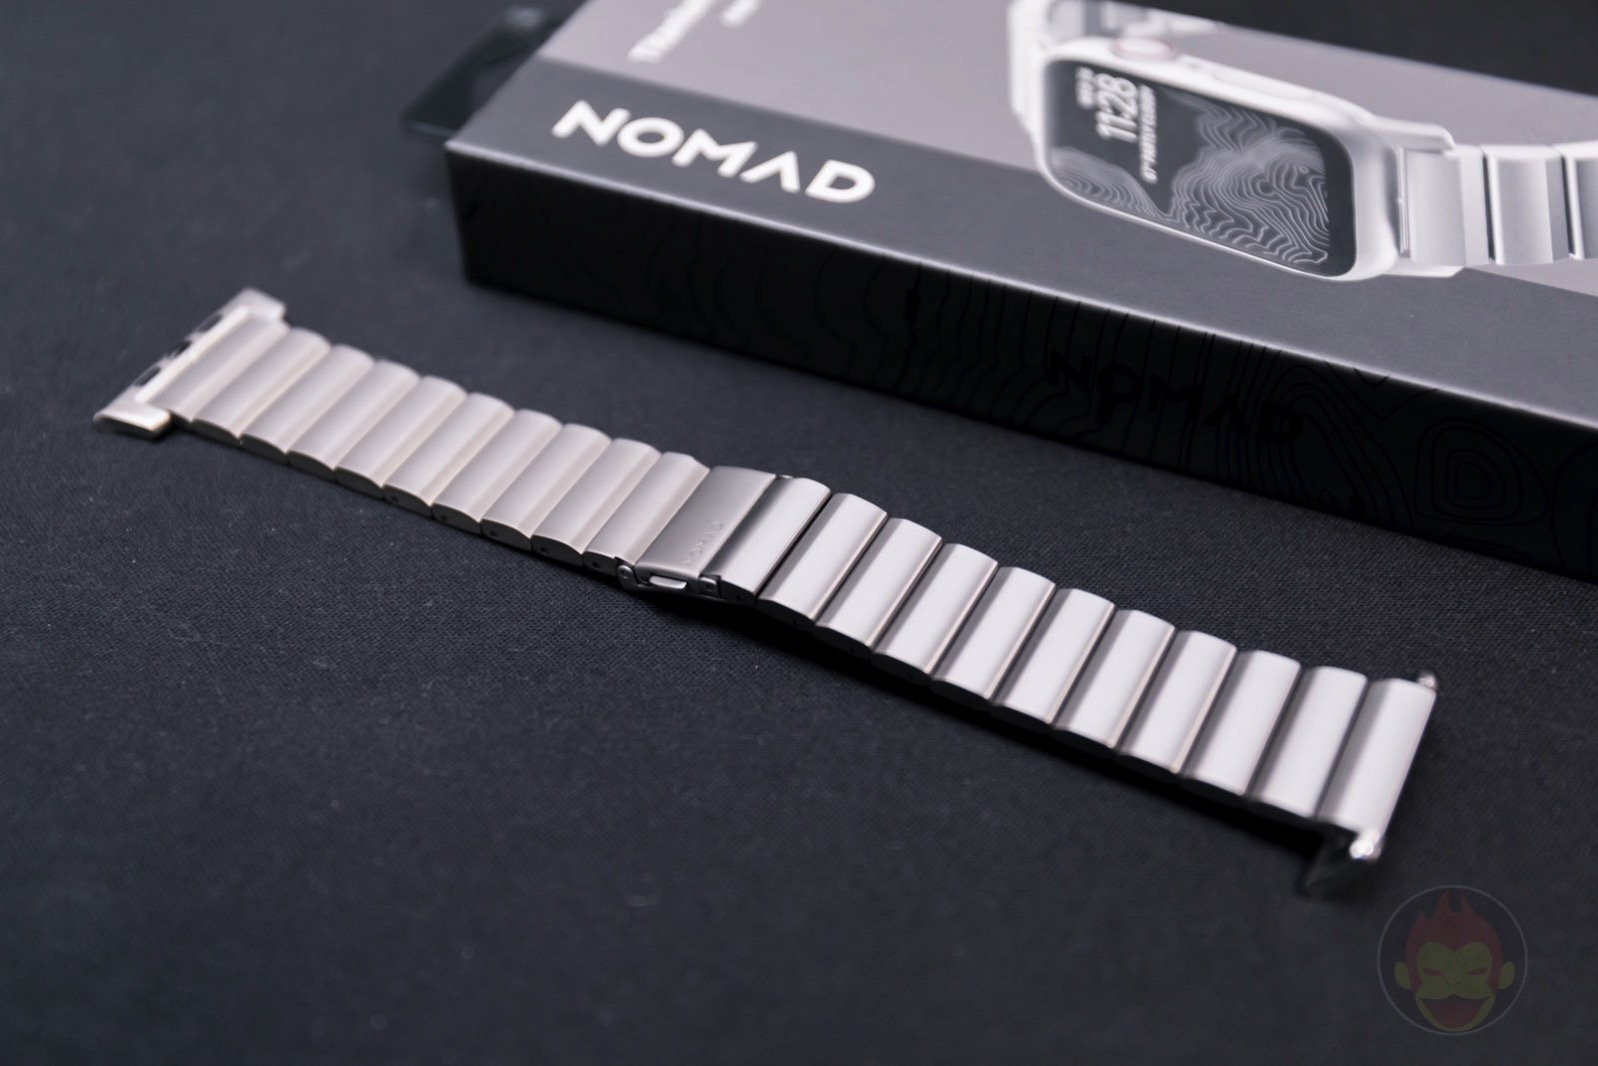 Apple-Watch-Nomad-Titanium-Band-Review-03.jpg